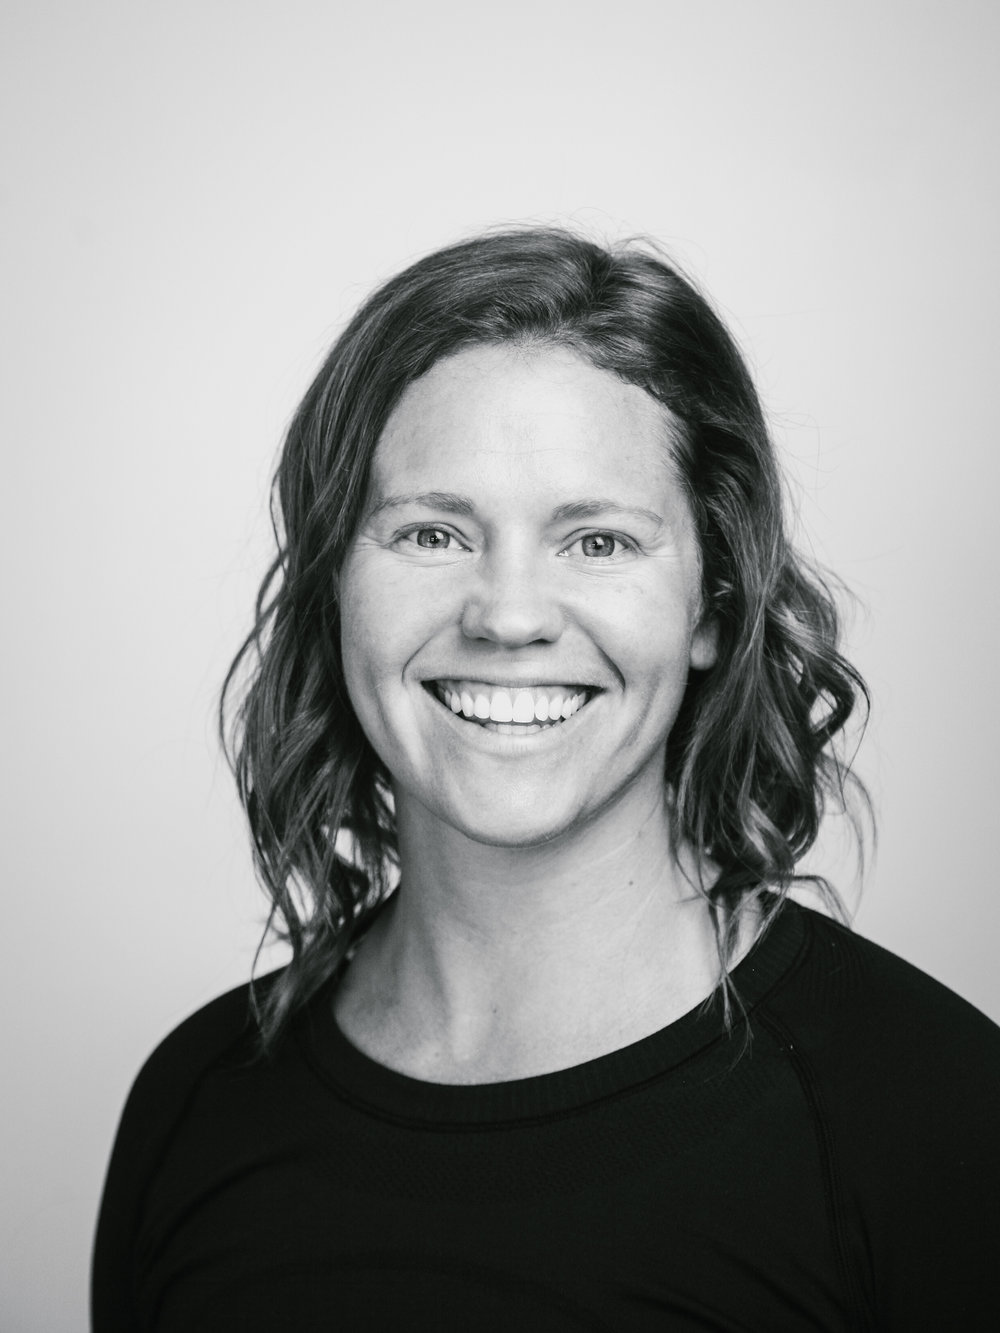 Kate McGowan - I teach: Yoga & TRXI want people to feel a deeper connection to the physical body they possess, and to delve deeper into the sensation of moving mindfully. I want people to feel a challenge that will shift their practice and state of mind for the better. I want people to leave their mat in a more positive capacity, mentally and physically, than they found it.Words I live by:Work hard, play hard! Trust in the hard work that you do, and ALWAYS make time to have some FUN!Beats I move to:Venice Venture by Big Wild; Alaska by Maggie Rogers; Obadiah by New School Collective; Learning to Fly by Tom PettyWhat I live for:Connecting with people on a real level is what makes me light up. I have always been an outgoing human and I am the most happy and myself when I'm surrounded by my community, especially if it's outside.